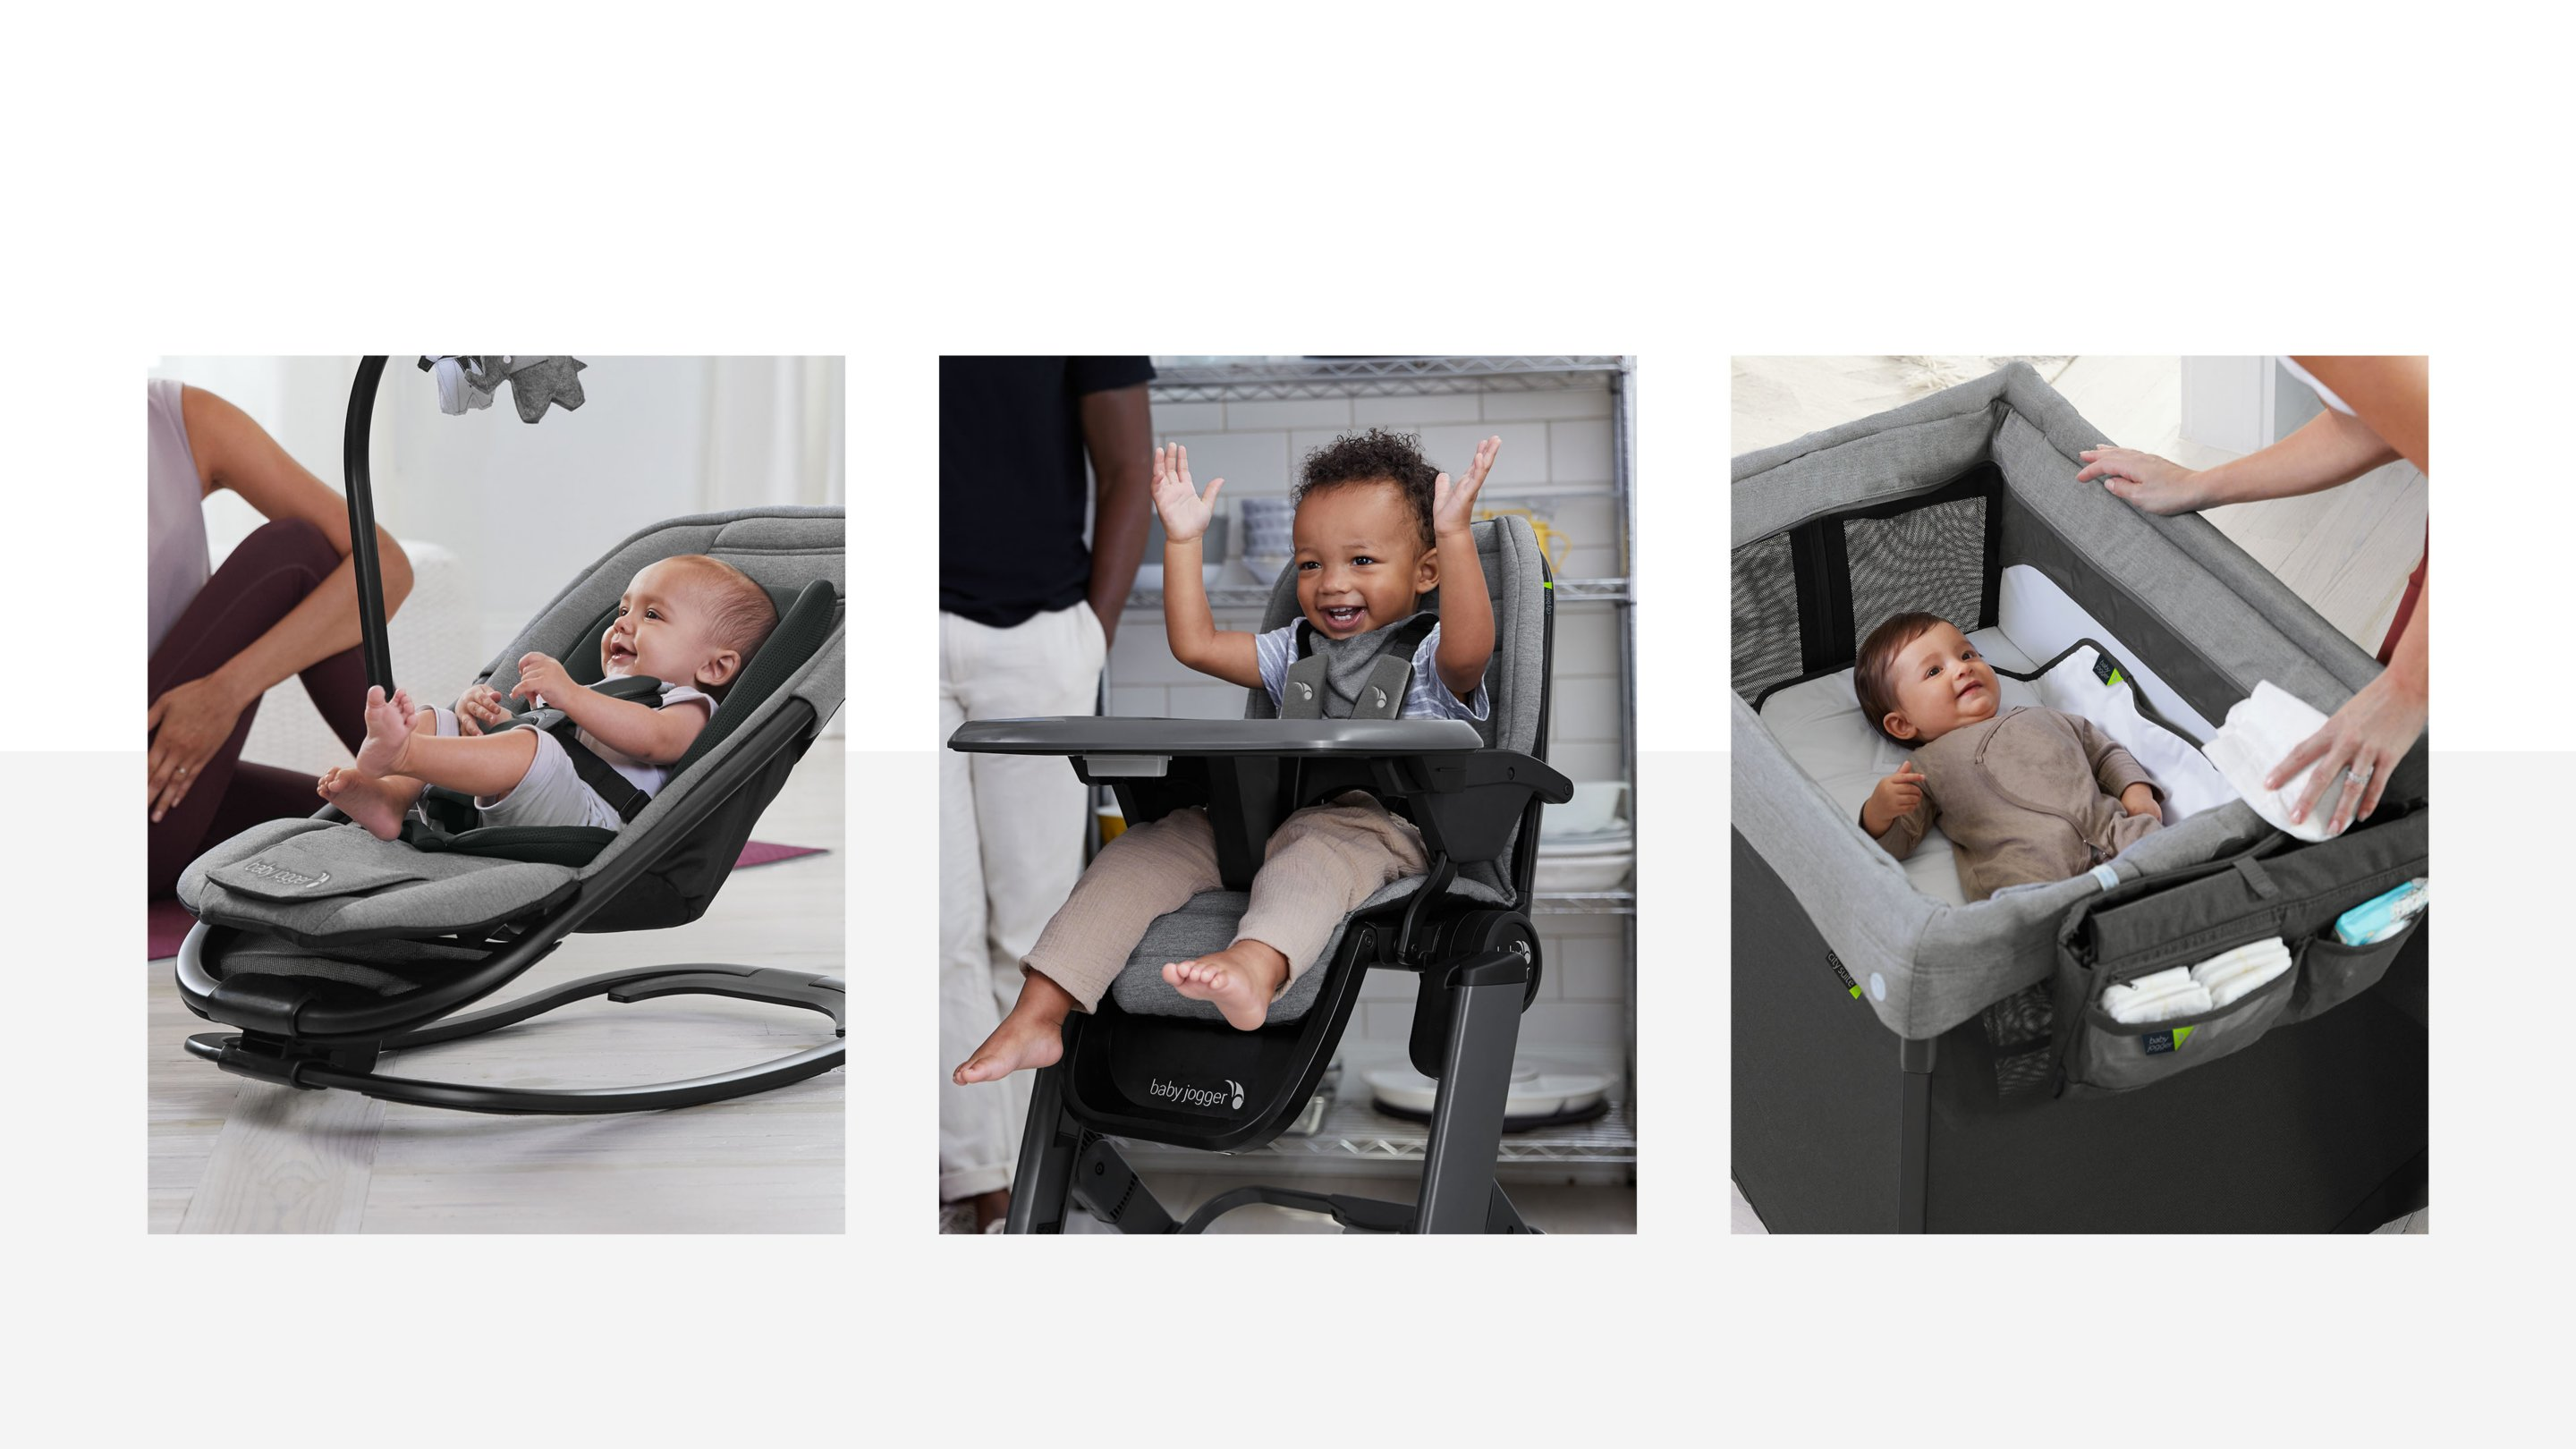 city sway 2 in 1 rocker and bouncer, city bistro high chair, and city suite multi level playard